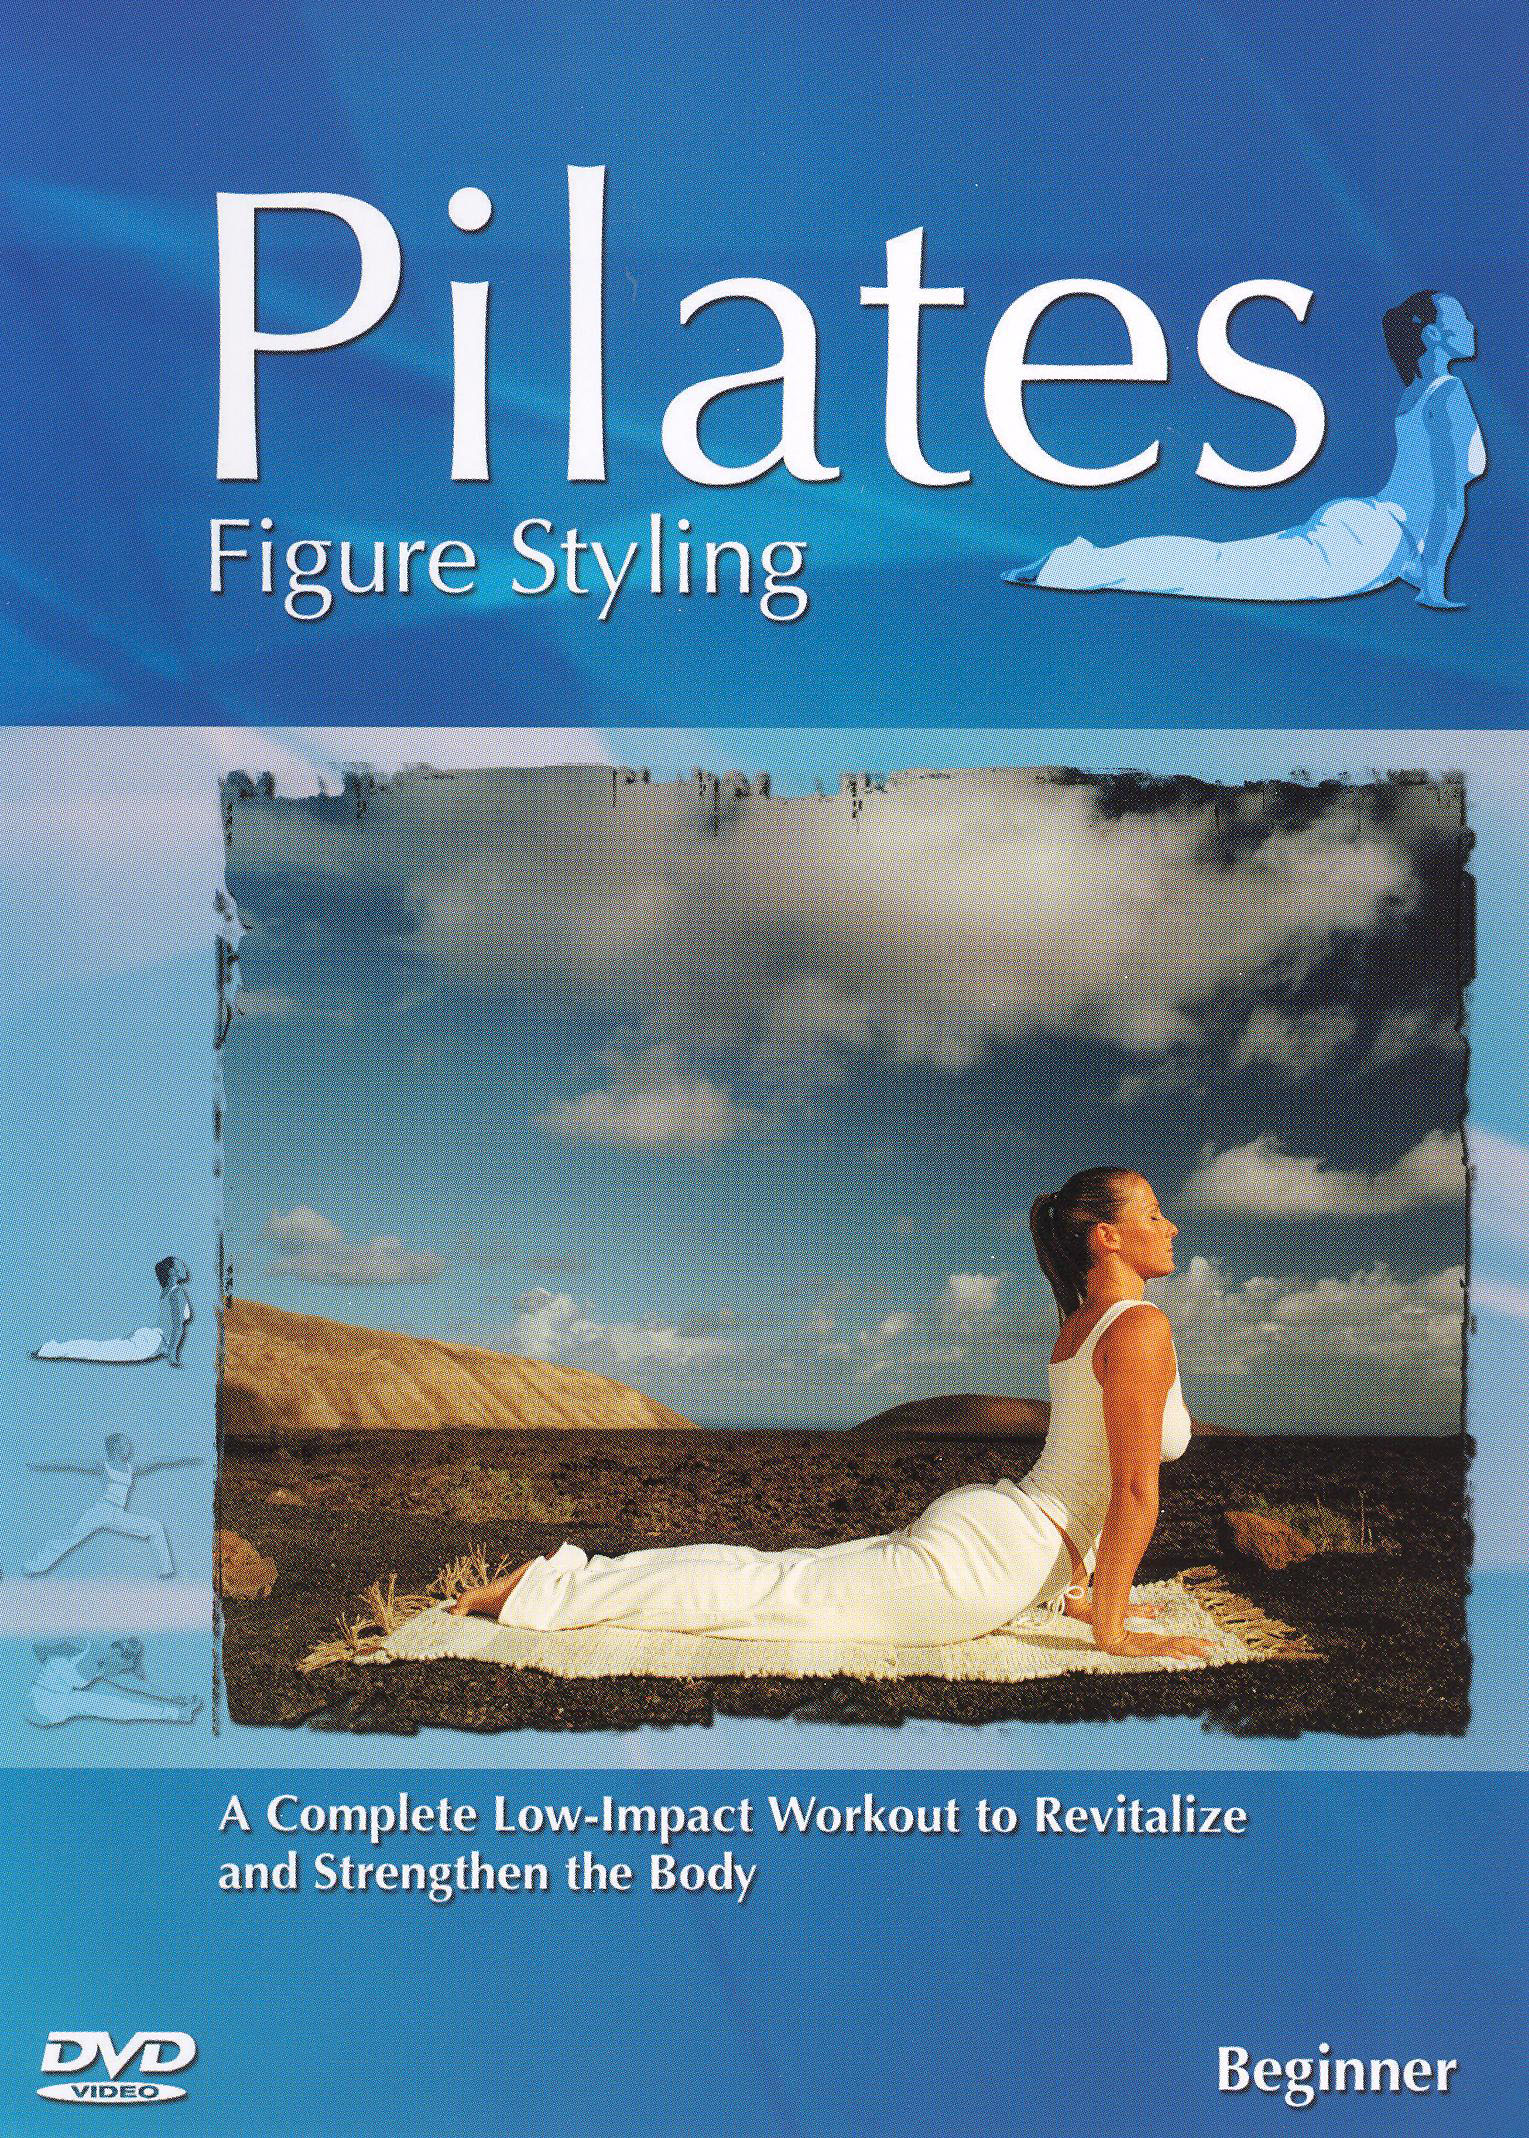 Pilates Figure Styling: Beginner